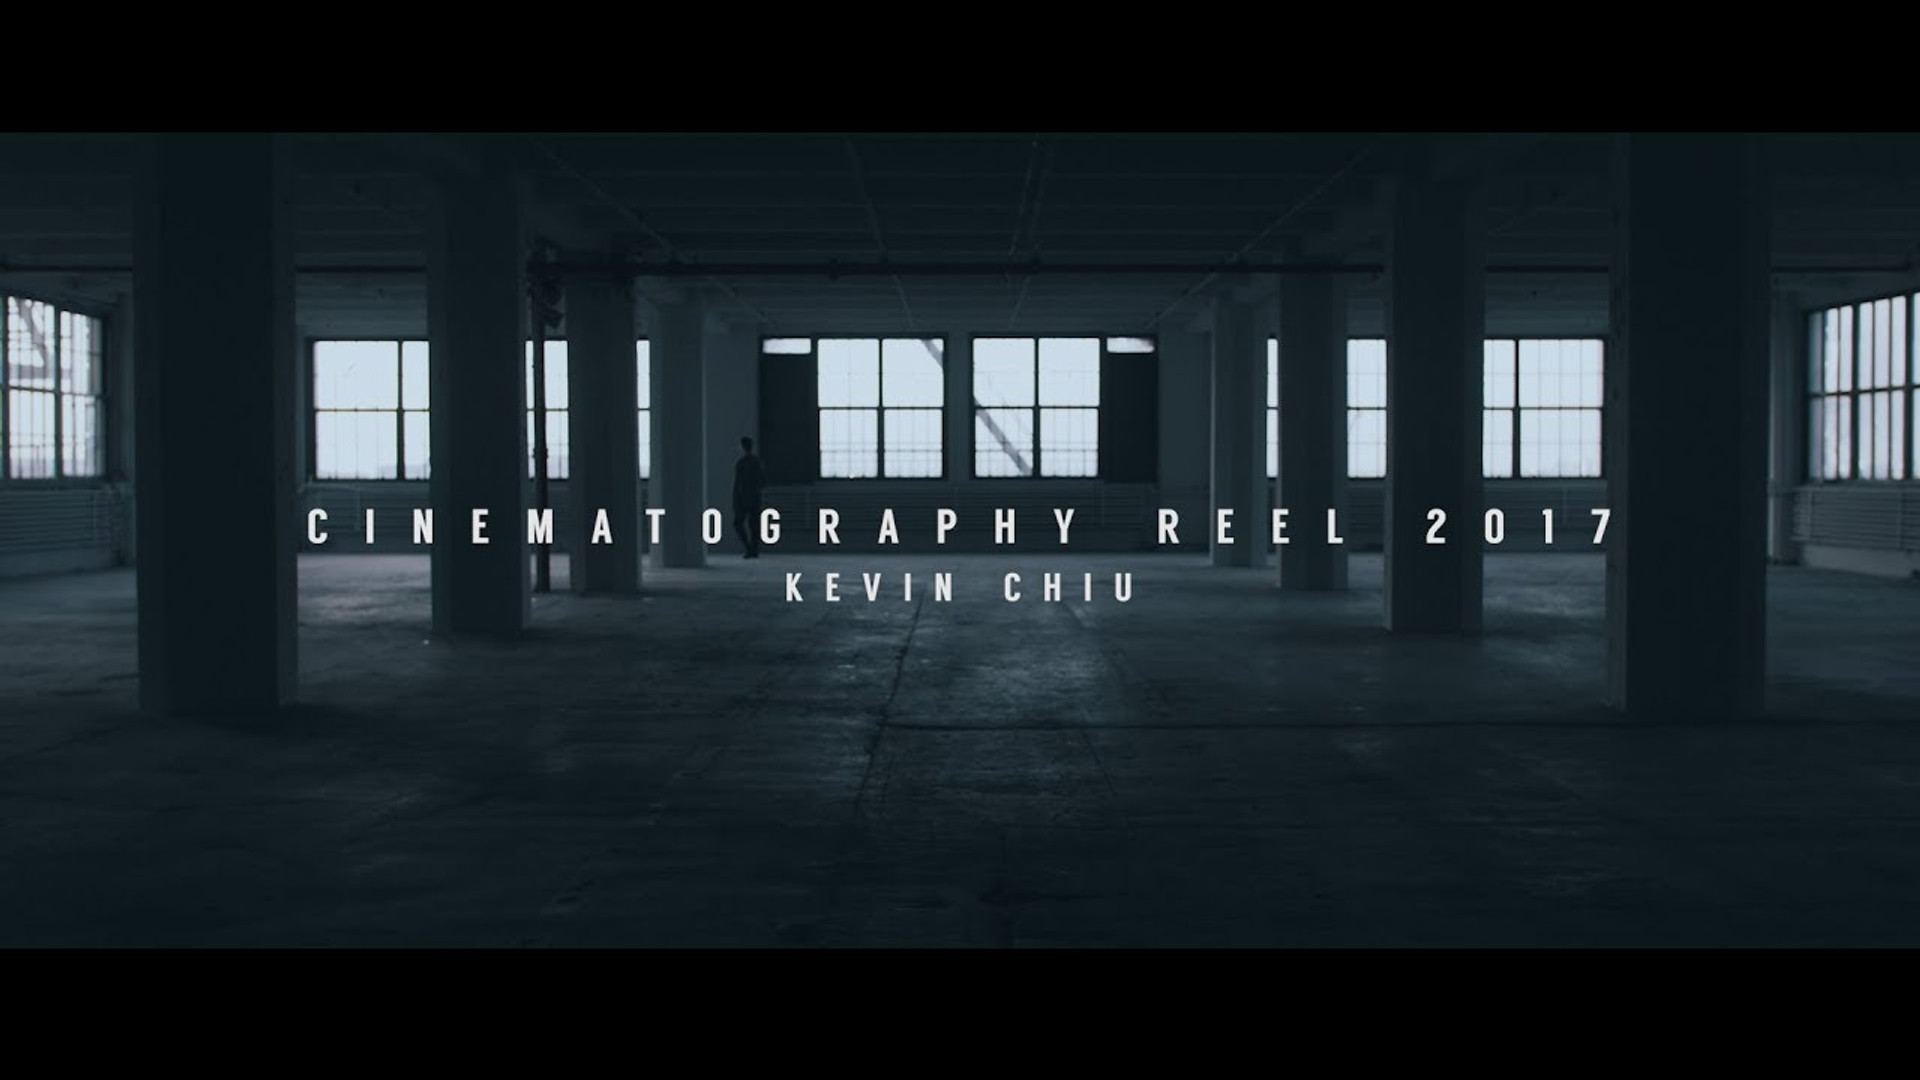 Cinematography Reel | 2017 | Kevin Chiu (GH5/GH4)